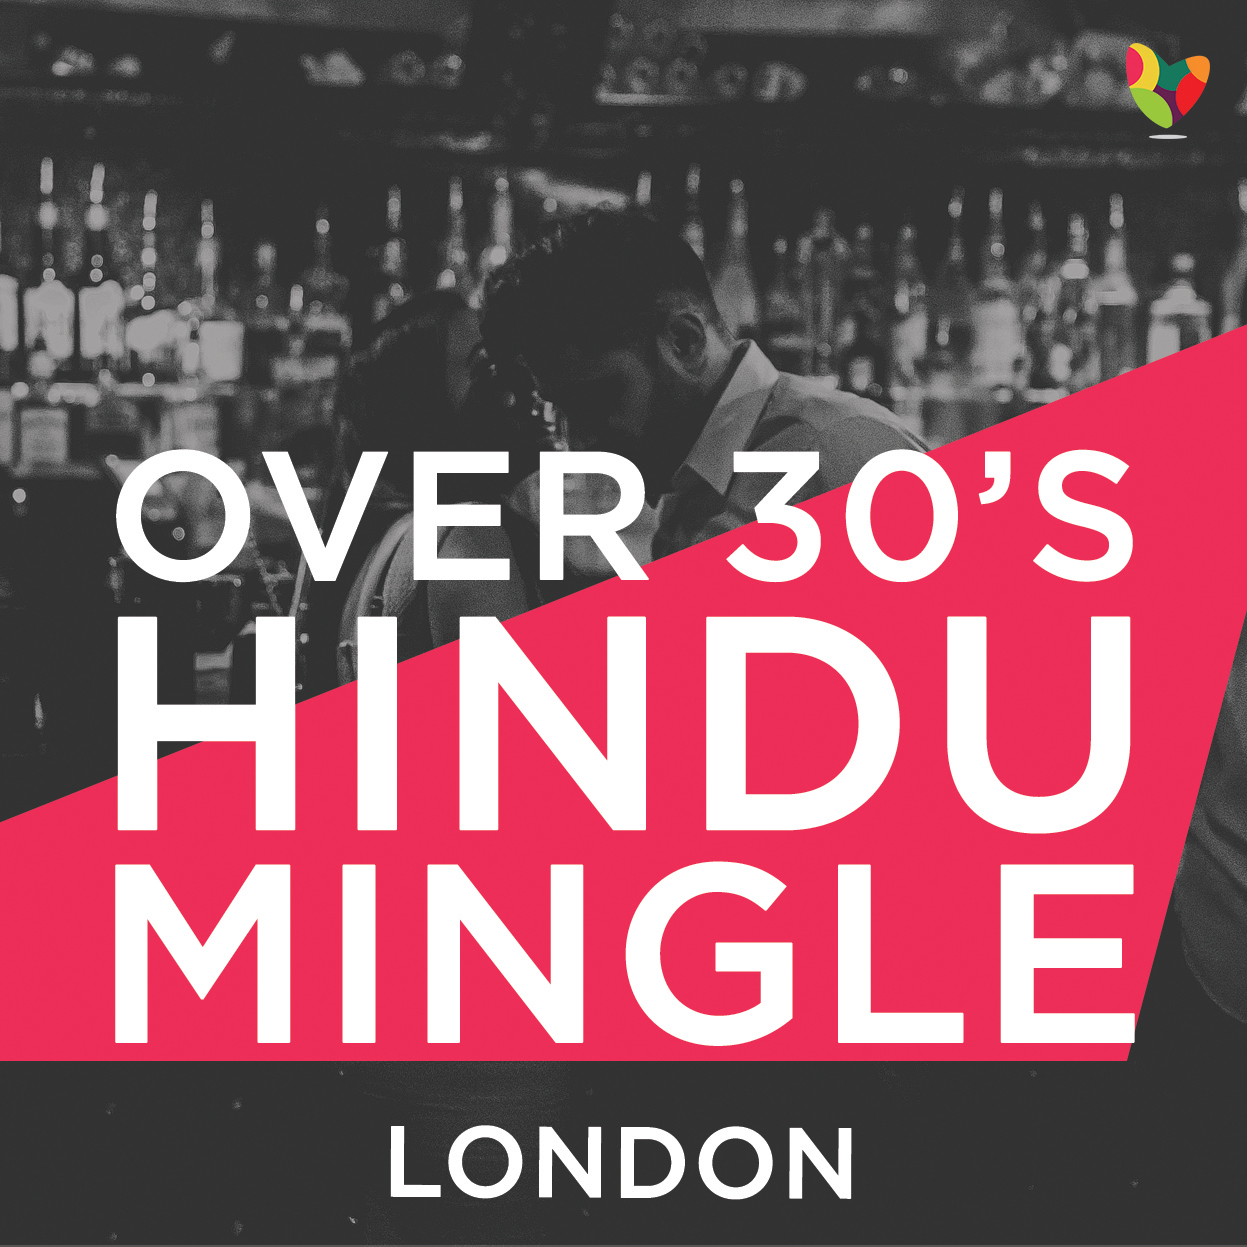 birmingham hindu singles Speed dating birmingham is a fab way to meet like-minded birmingham singles meet new people at birmingham's most popular singles nights.